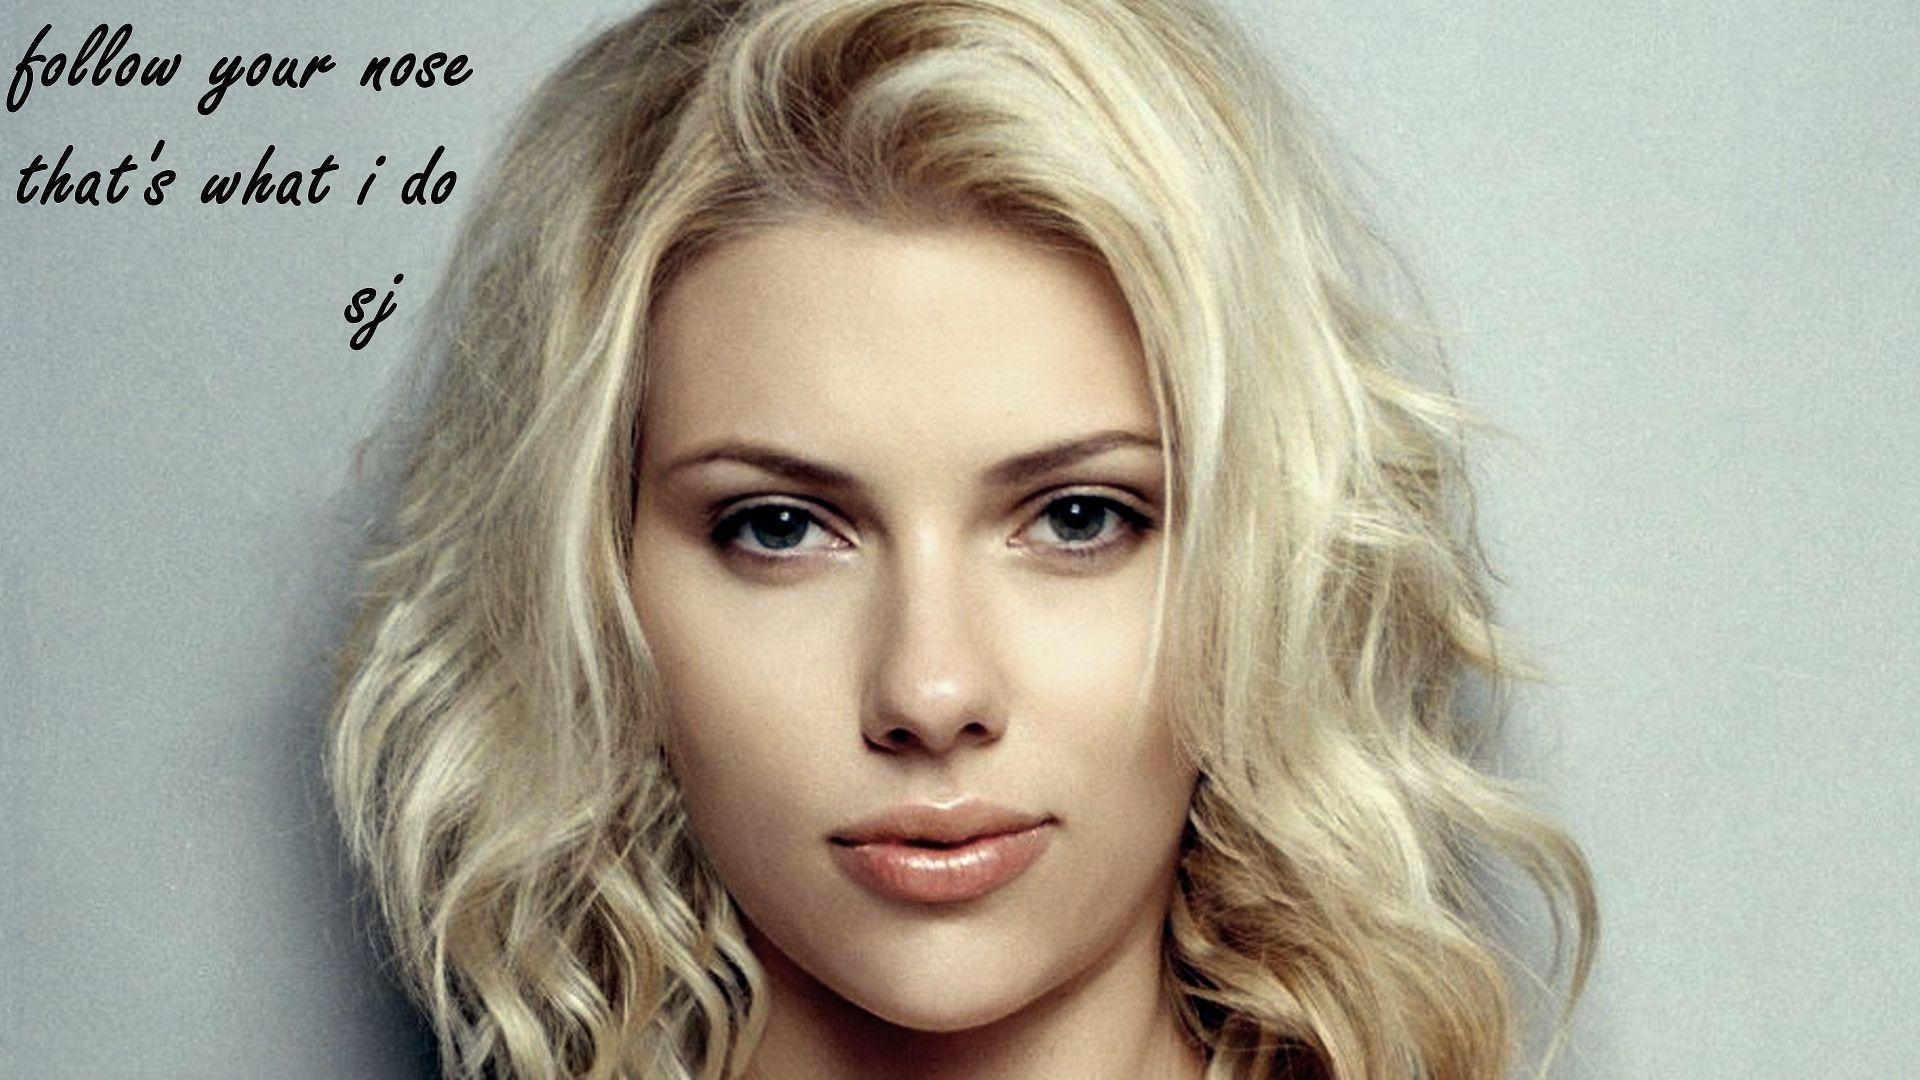 Scarlett Johansson Wallpaper 32 Backgrounds | Wallruru.com